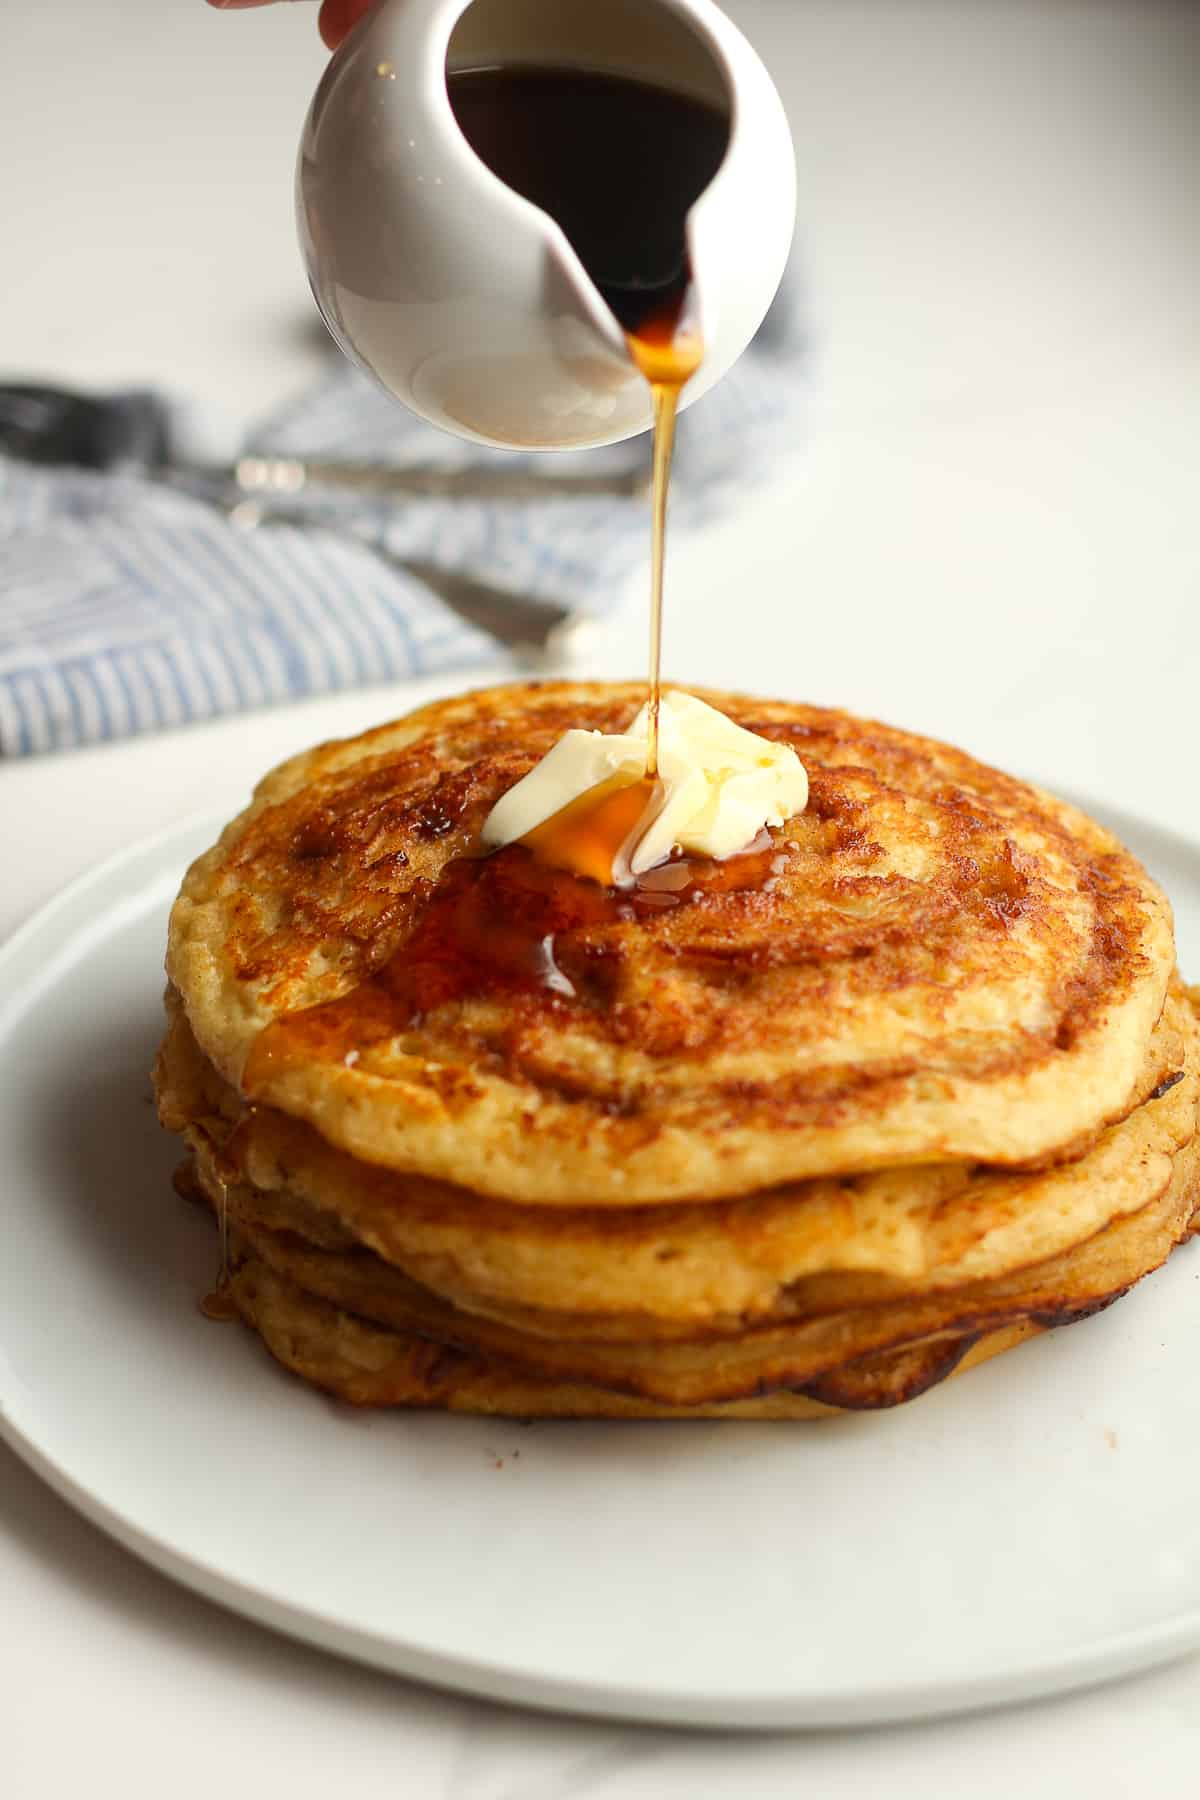 Some syrup drizzling on a stack of pancakes.